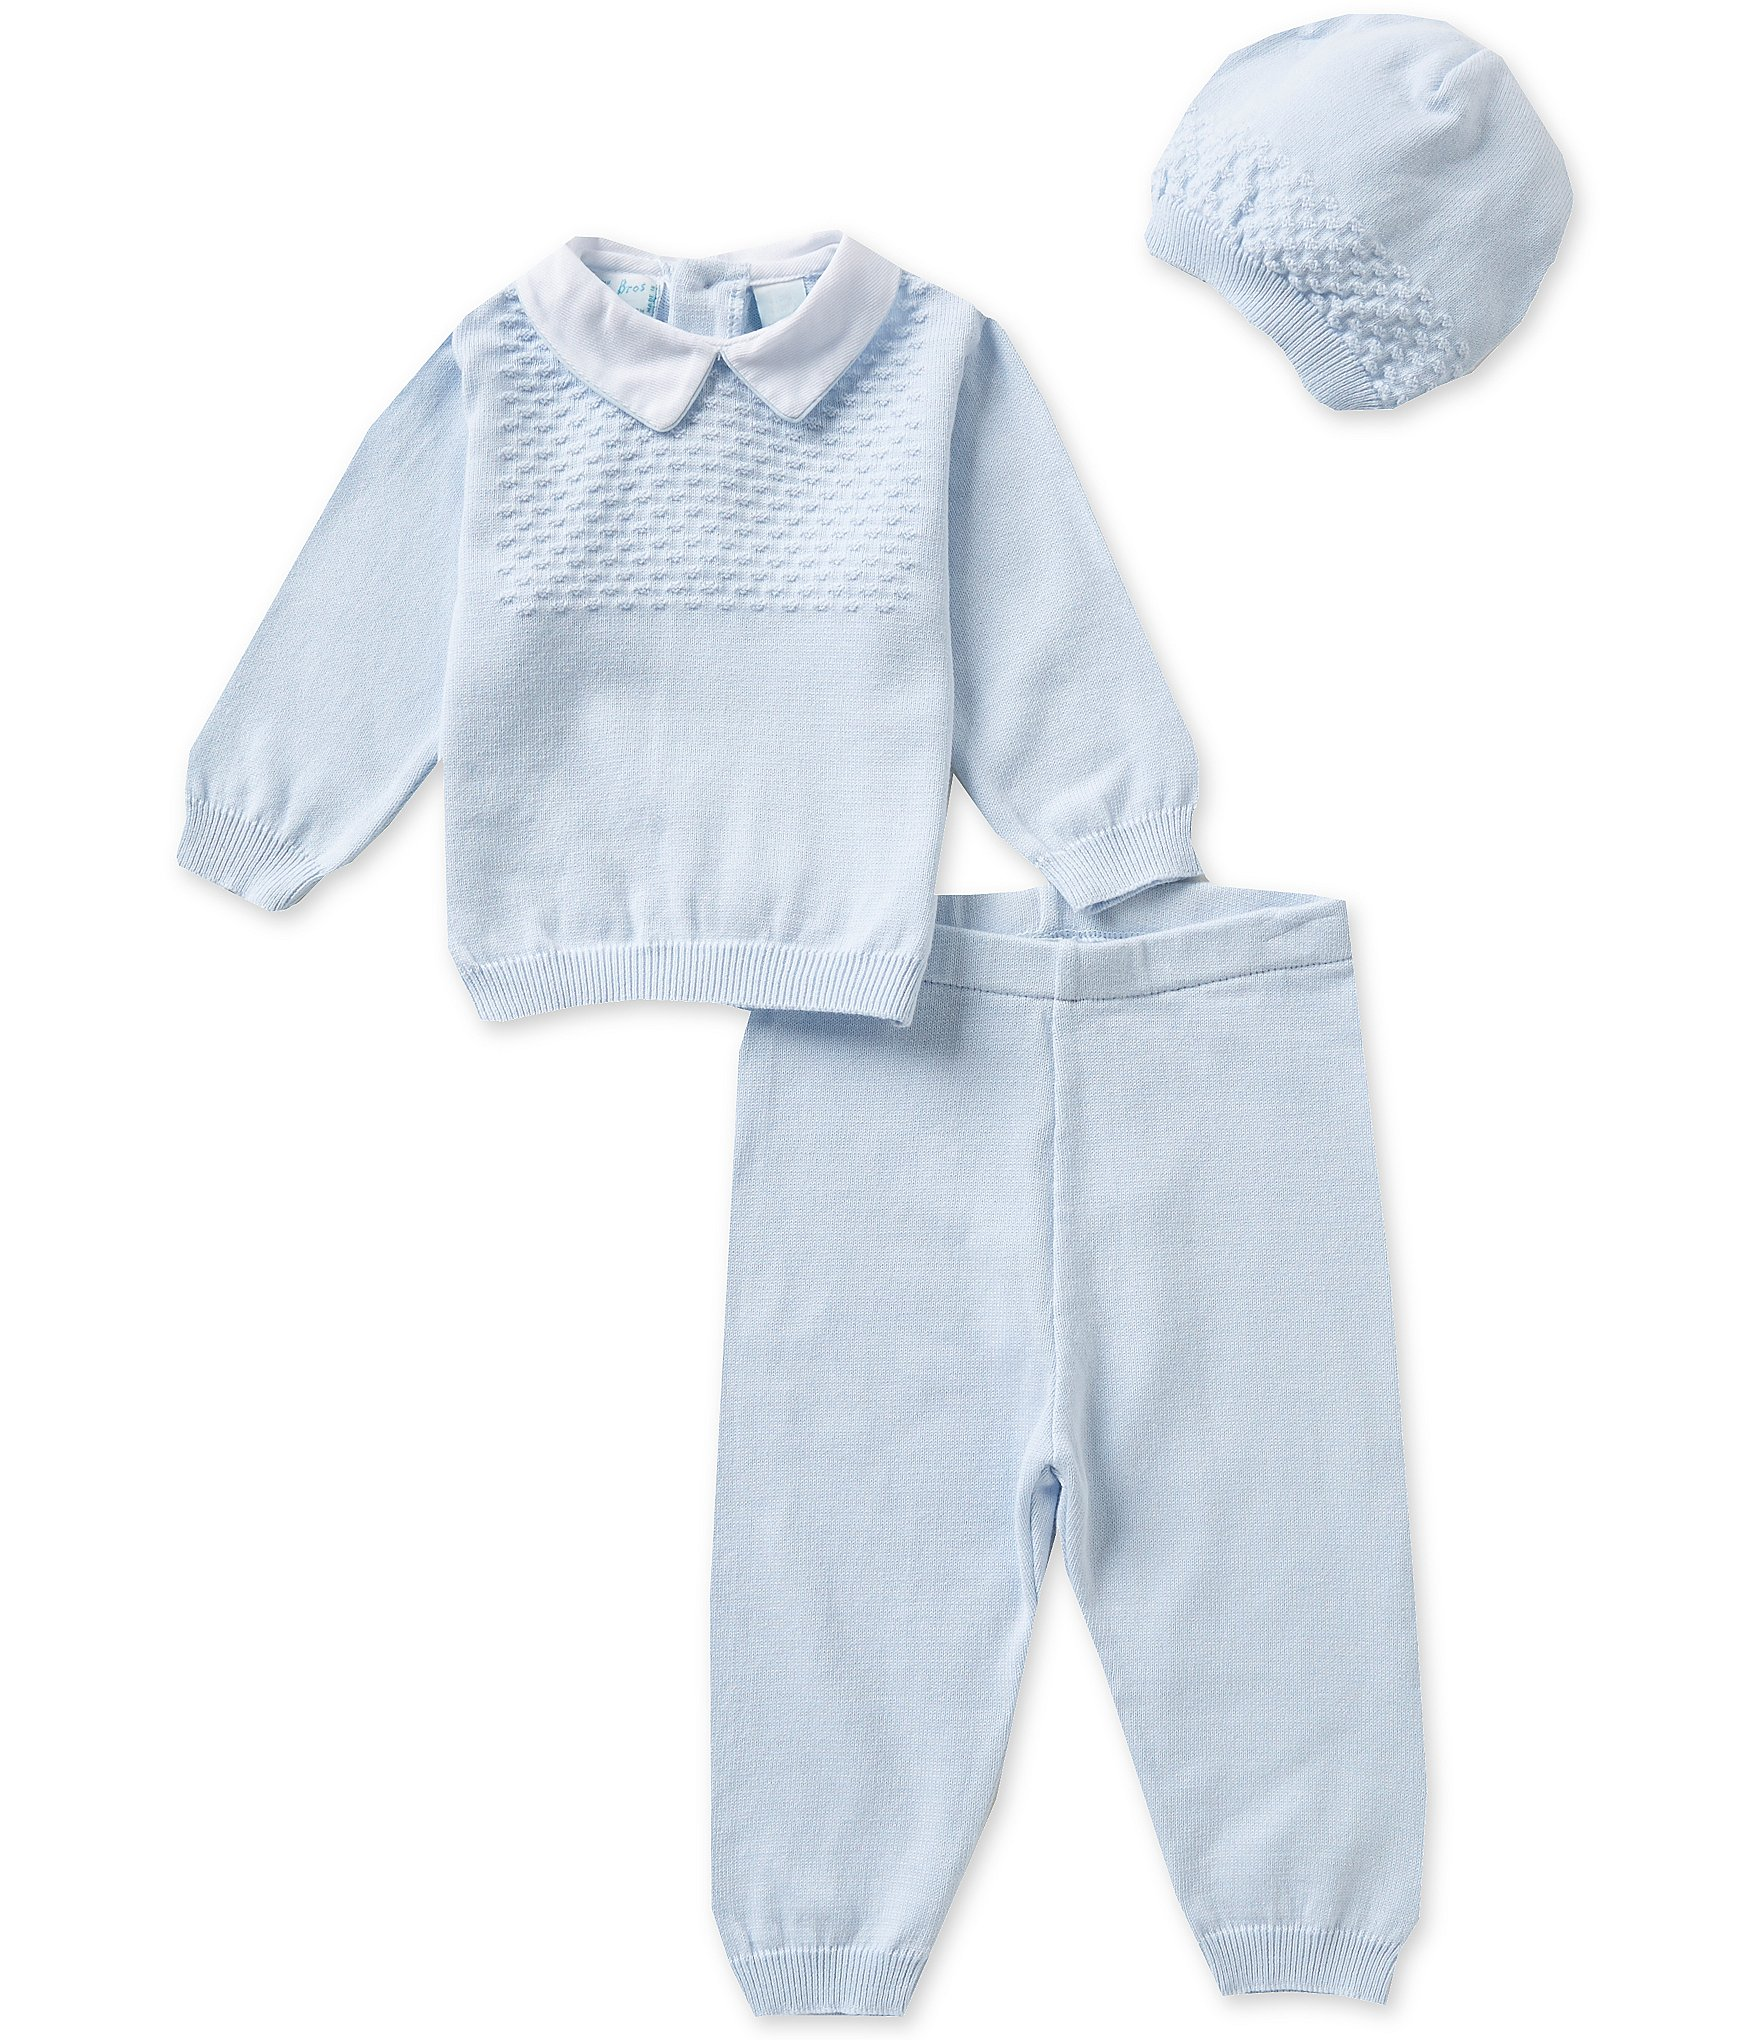 Feltman Brothers Baby Boys Clothing